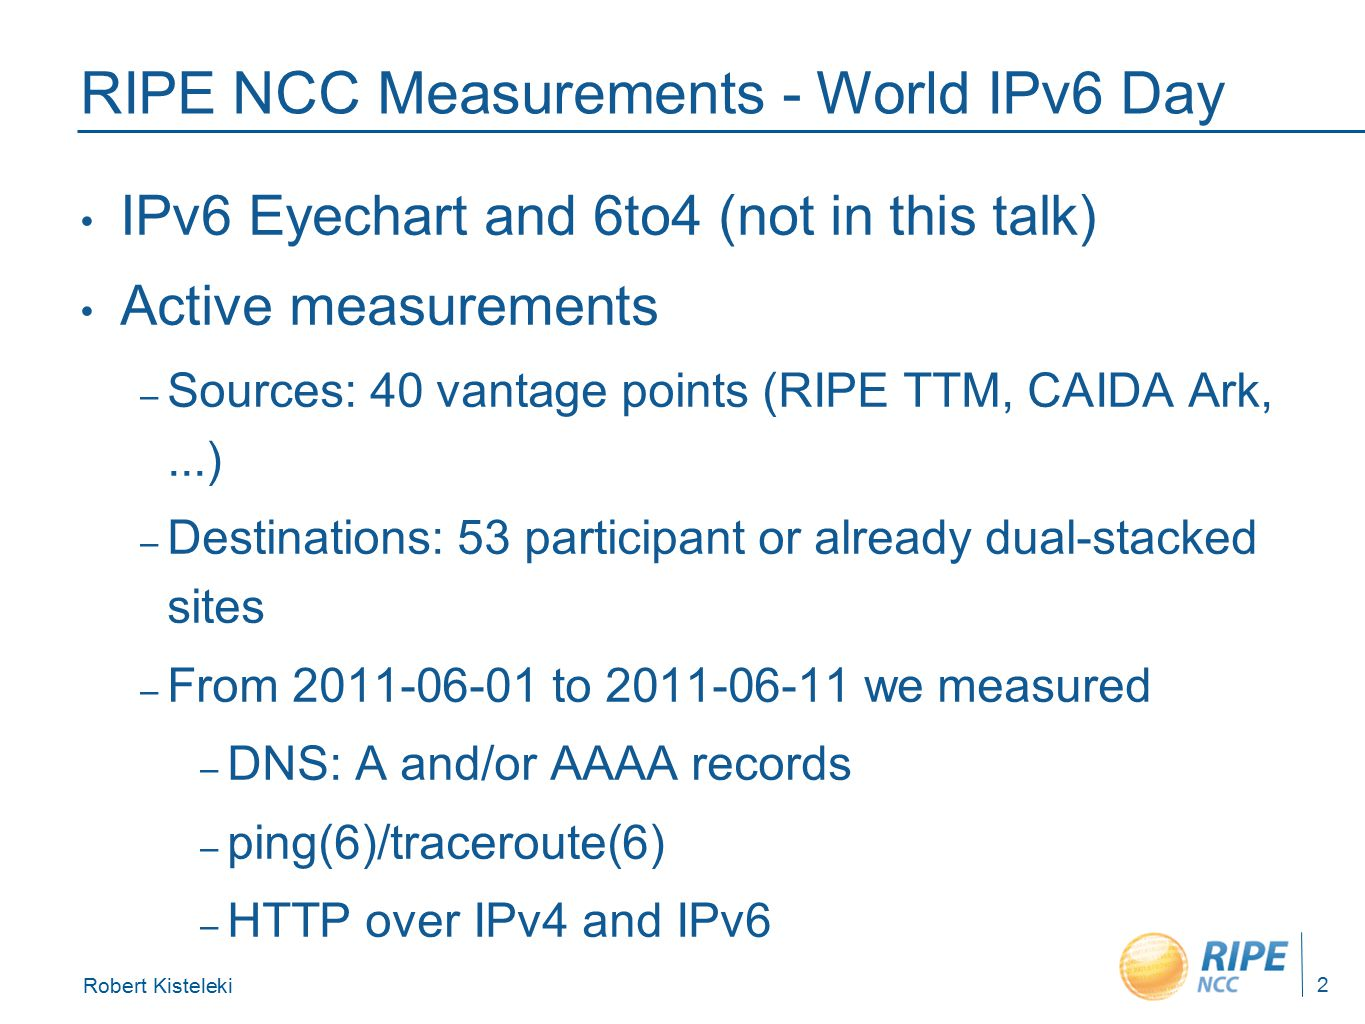 Robert Kisteleki 2 RIPE NCC Measurements - World IPv6 Day IPv6 Eyechart and 6to4 (not in this talk) Active measurements – Sources: 40 vantage points (RIPE TTM, CAIDA Ark,...) – Destinations: 53 participant or already dual-stacked sites – From 2011-06-01 to 2011-06-11 we measured – DNS: A and/or AAAA records – ping(6)/traceroute(6) – HTTP over IPv4 and IPv6